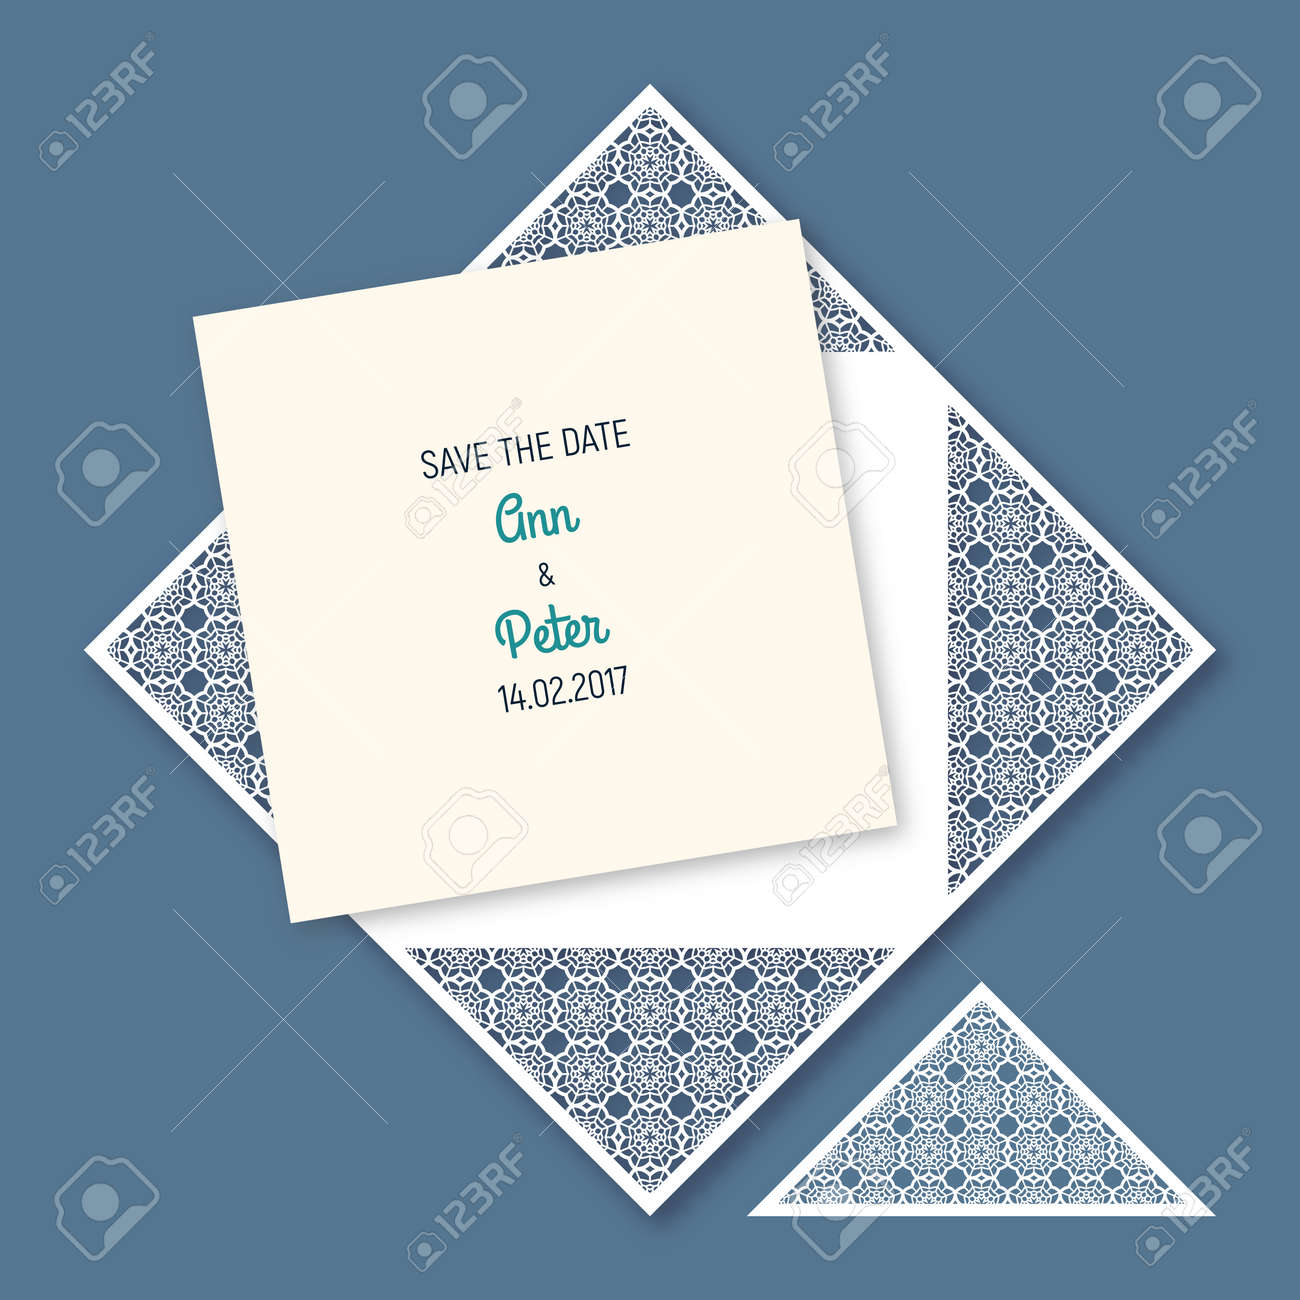 Wedding invitation with geometric pattern cut laser square envelope vector wedding invitation with geometric pattern cut laser square envelope template for greeting cards envelopes invitations vector paper cutting stopboris Choice Image